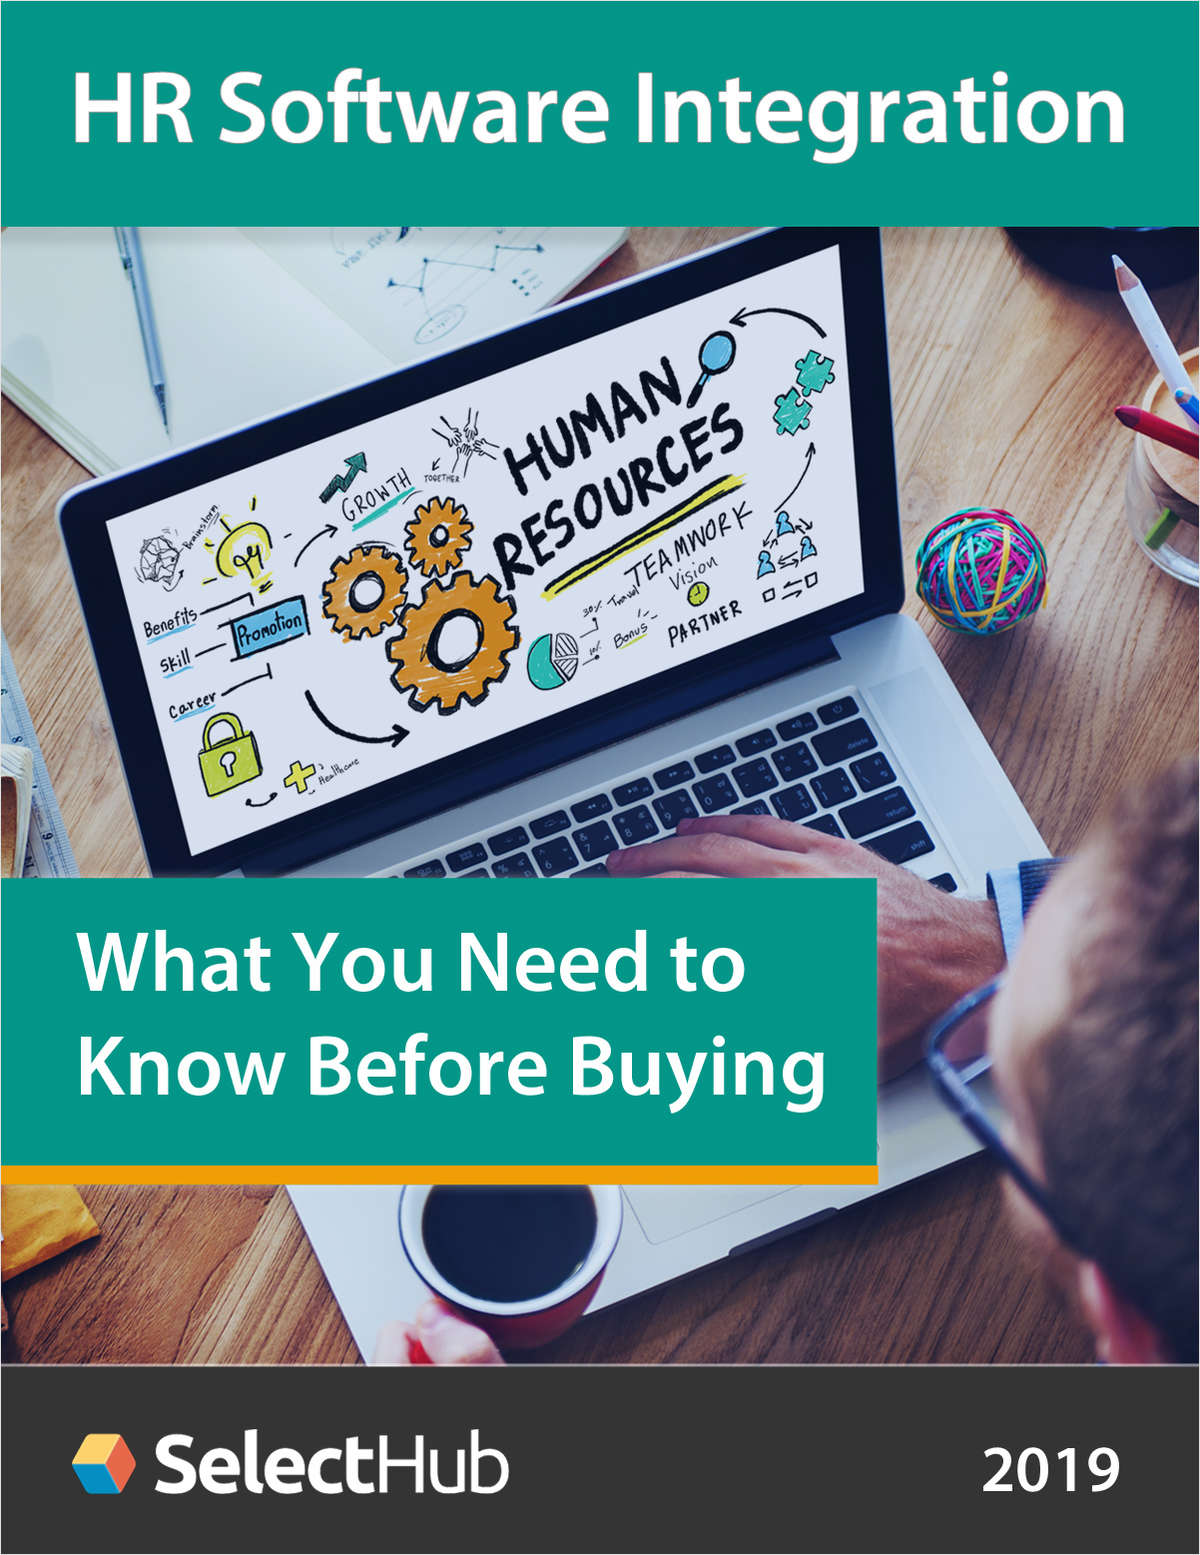 New HR Software Integration: What You Need to Know Before Buying